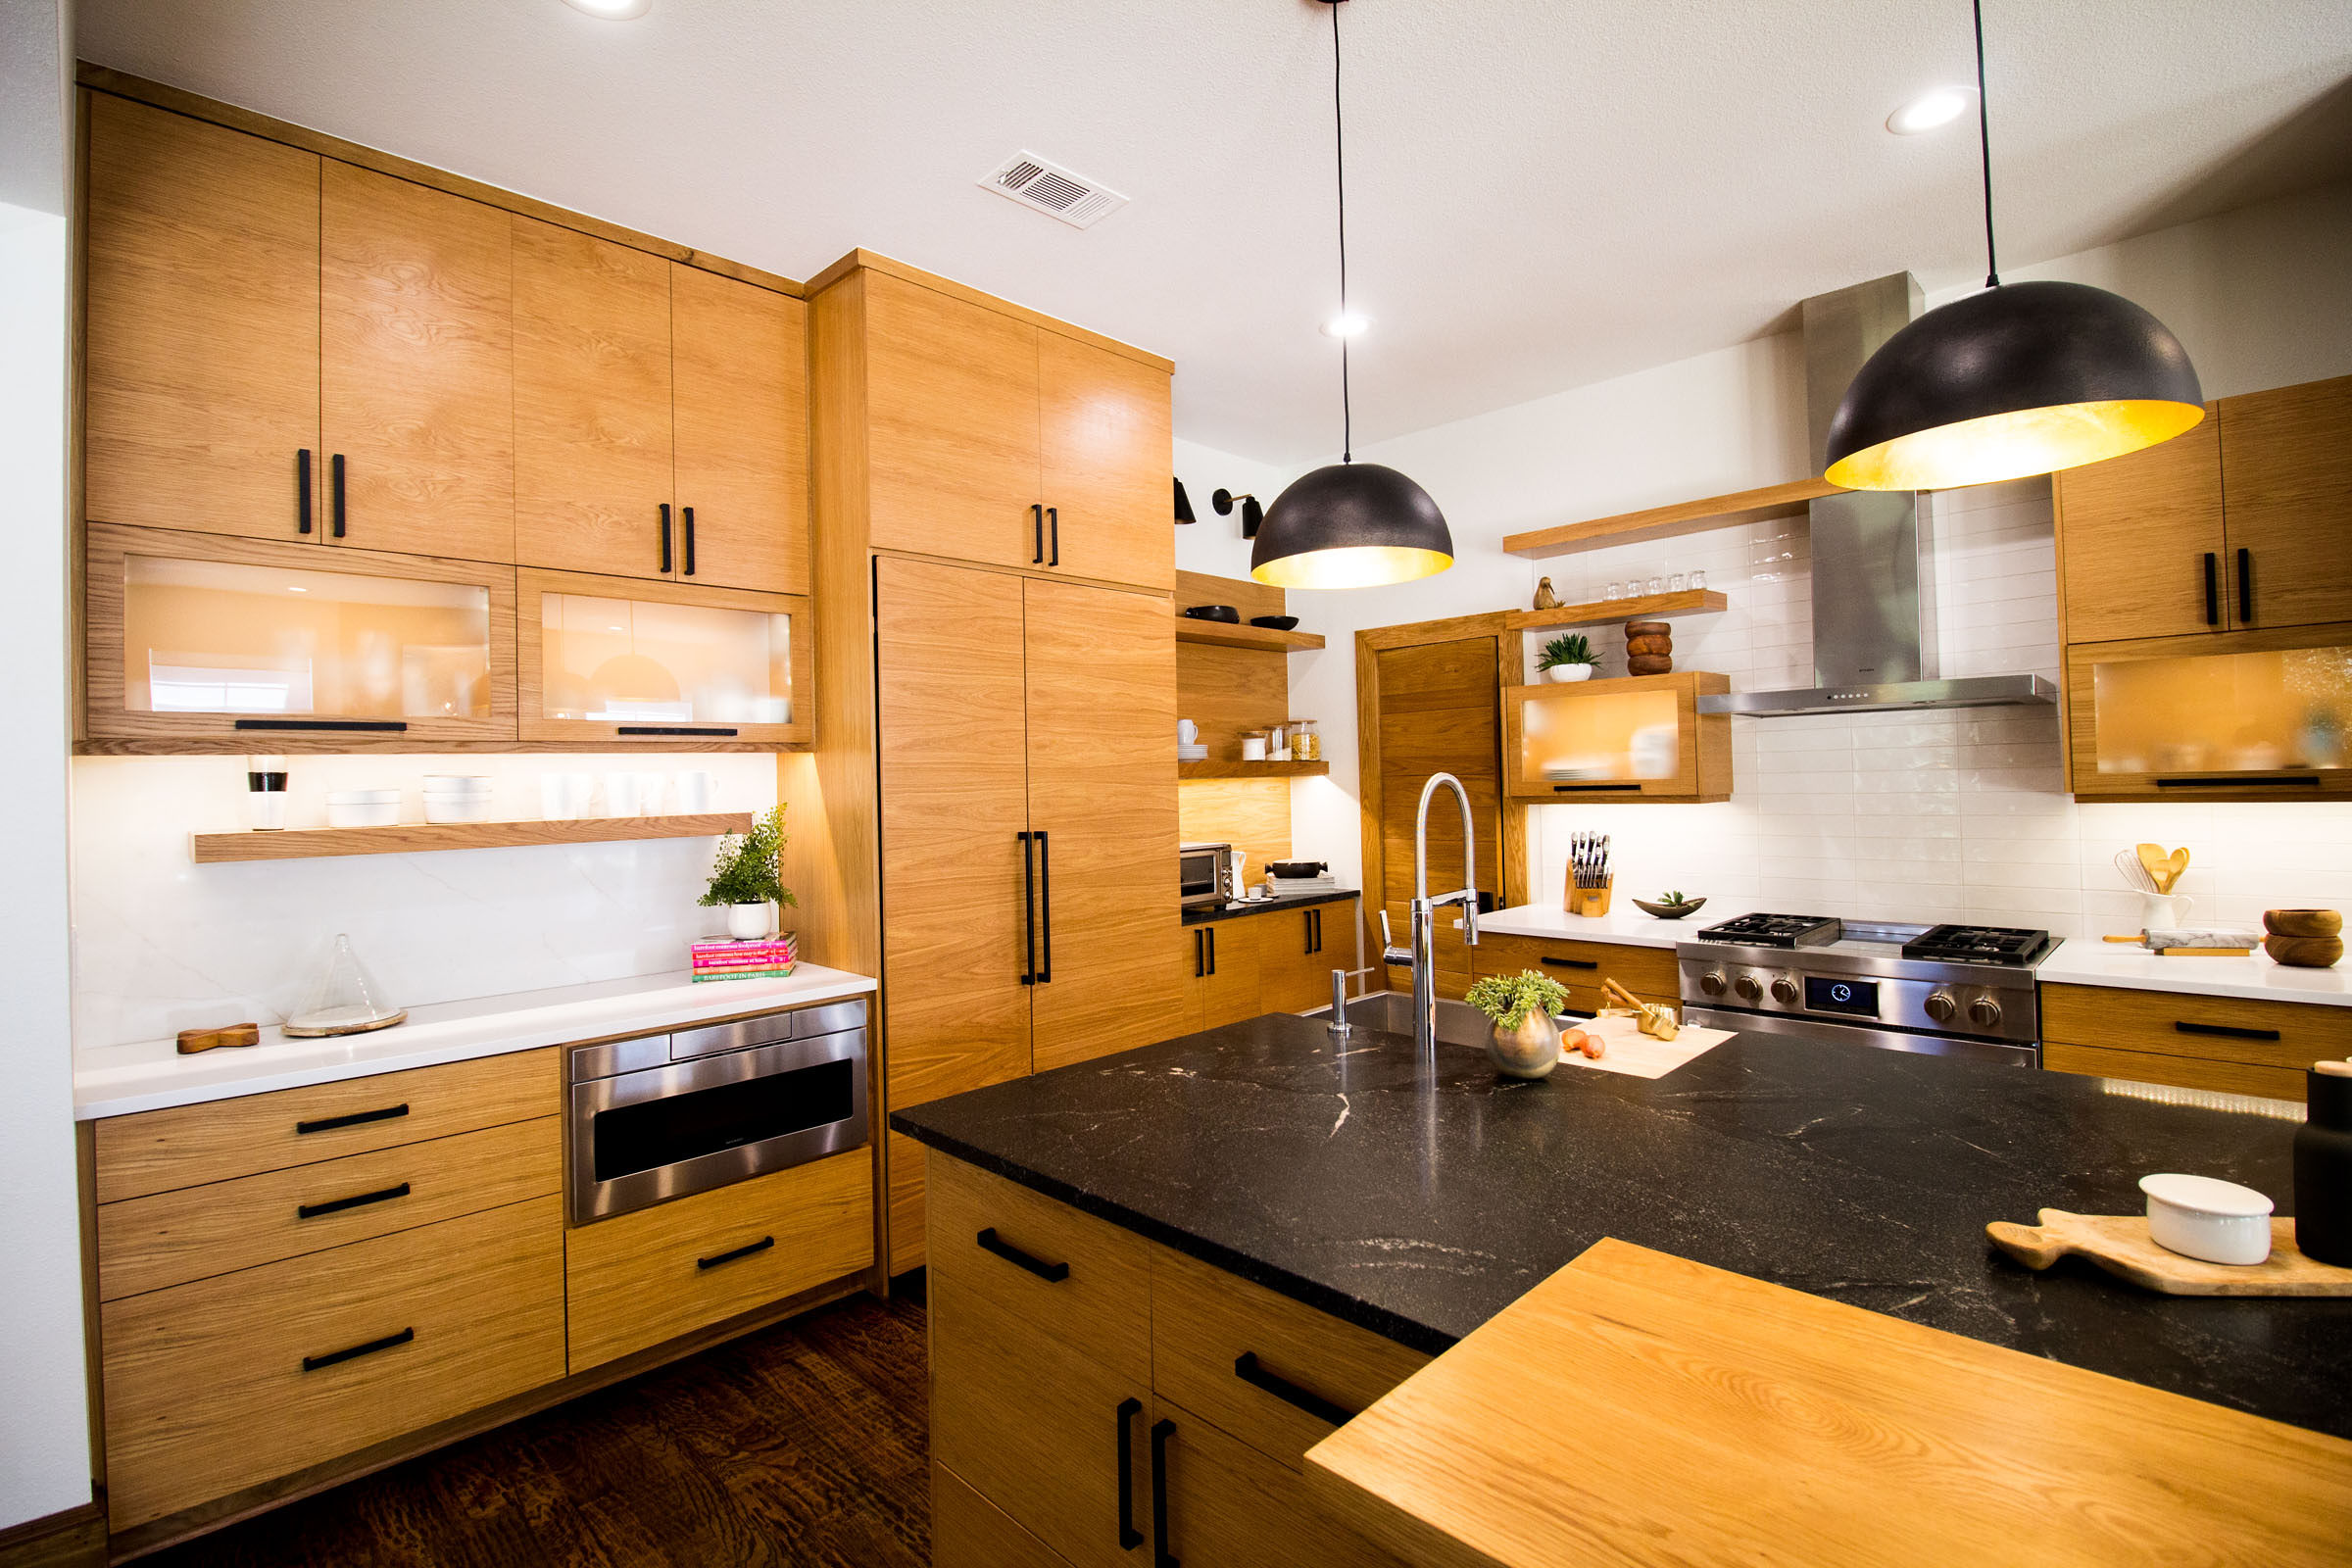 Scandinavian Kitchen Remodel with black counter slabs, blonde wood cabinets, black accents, minimalistic vibes